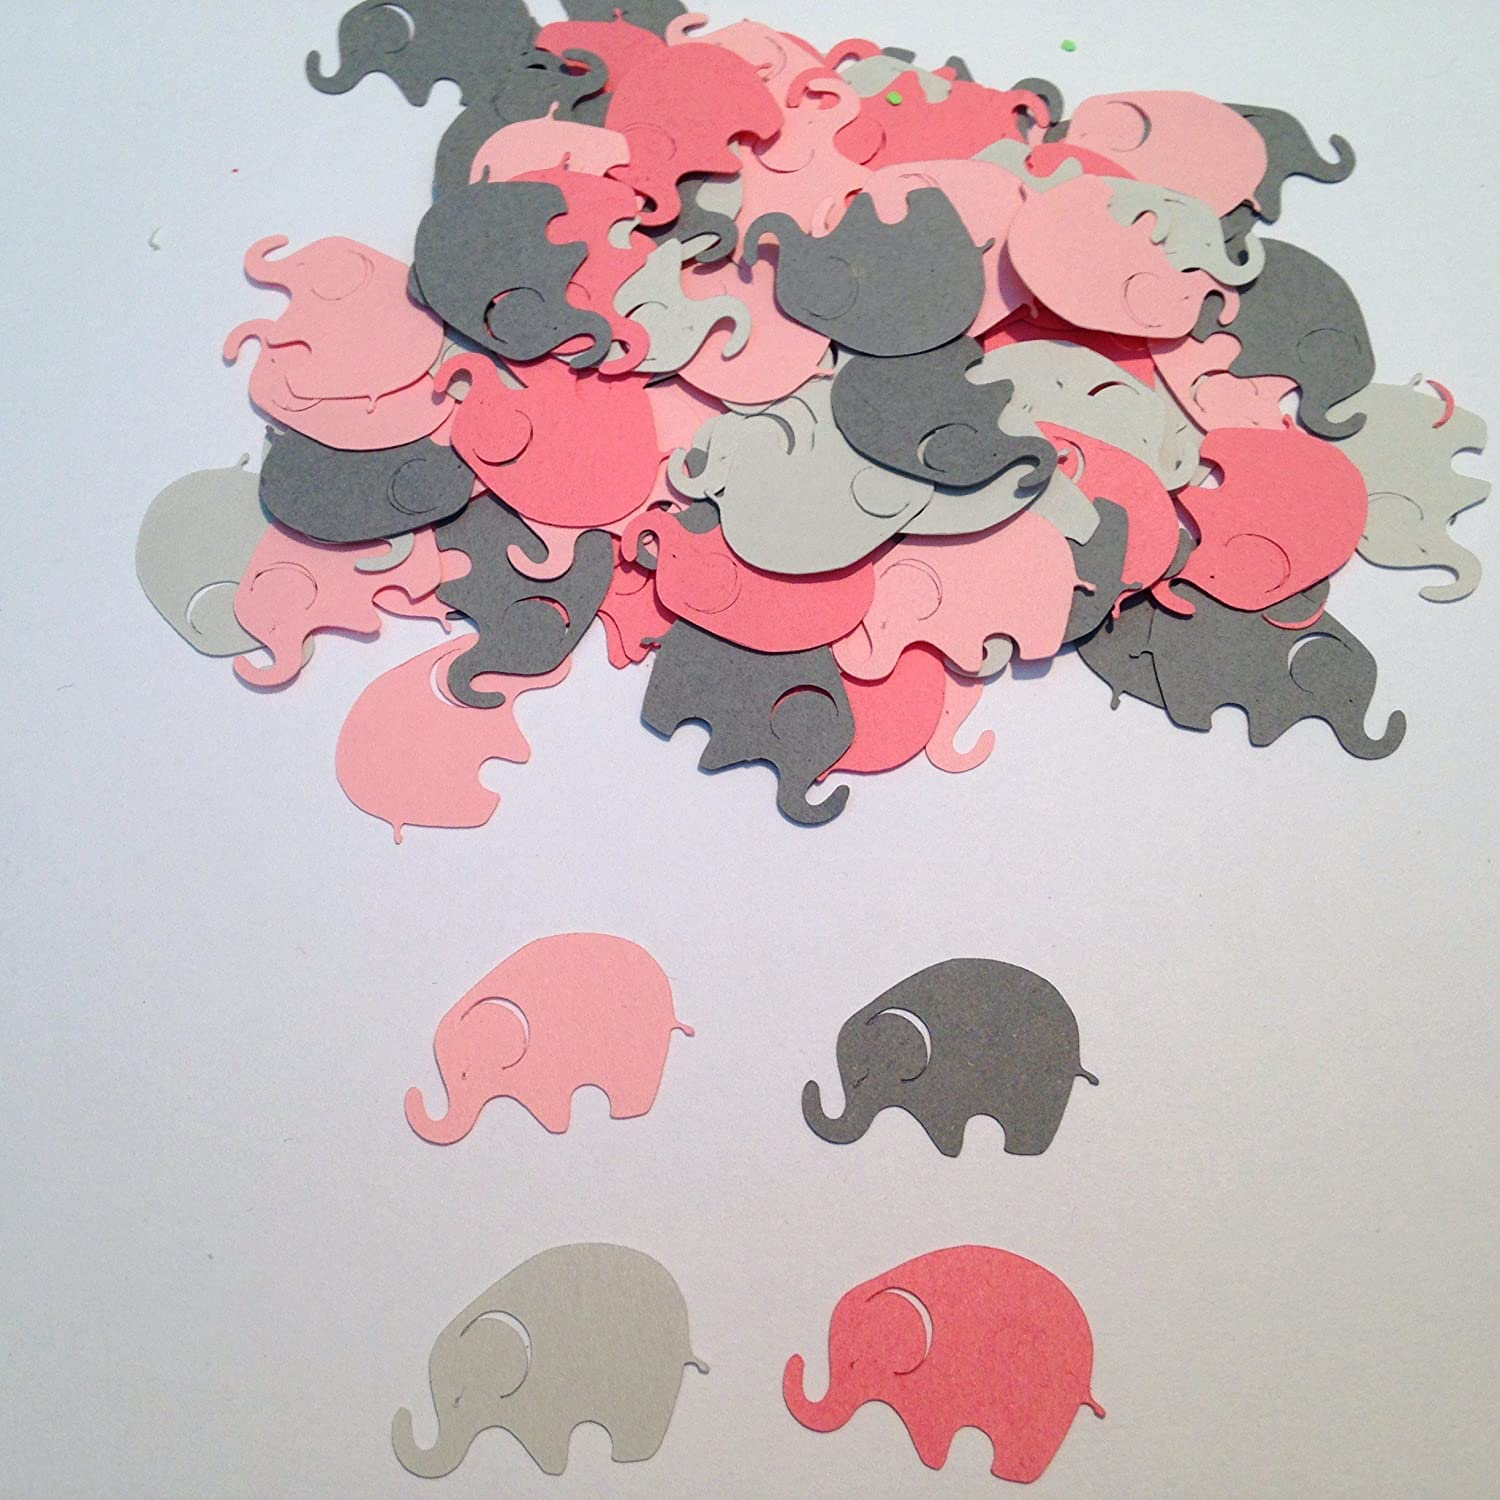 Elephant Baby Shower, Pink Gray Elephant, Elephant Confetti, Elephant Cut Out, Elephant Die Cut, Elephant Theme, Girl Baby Shower, 100 pieces